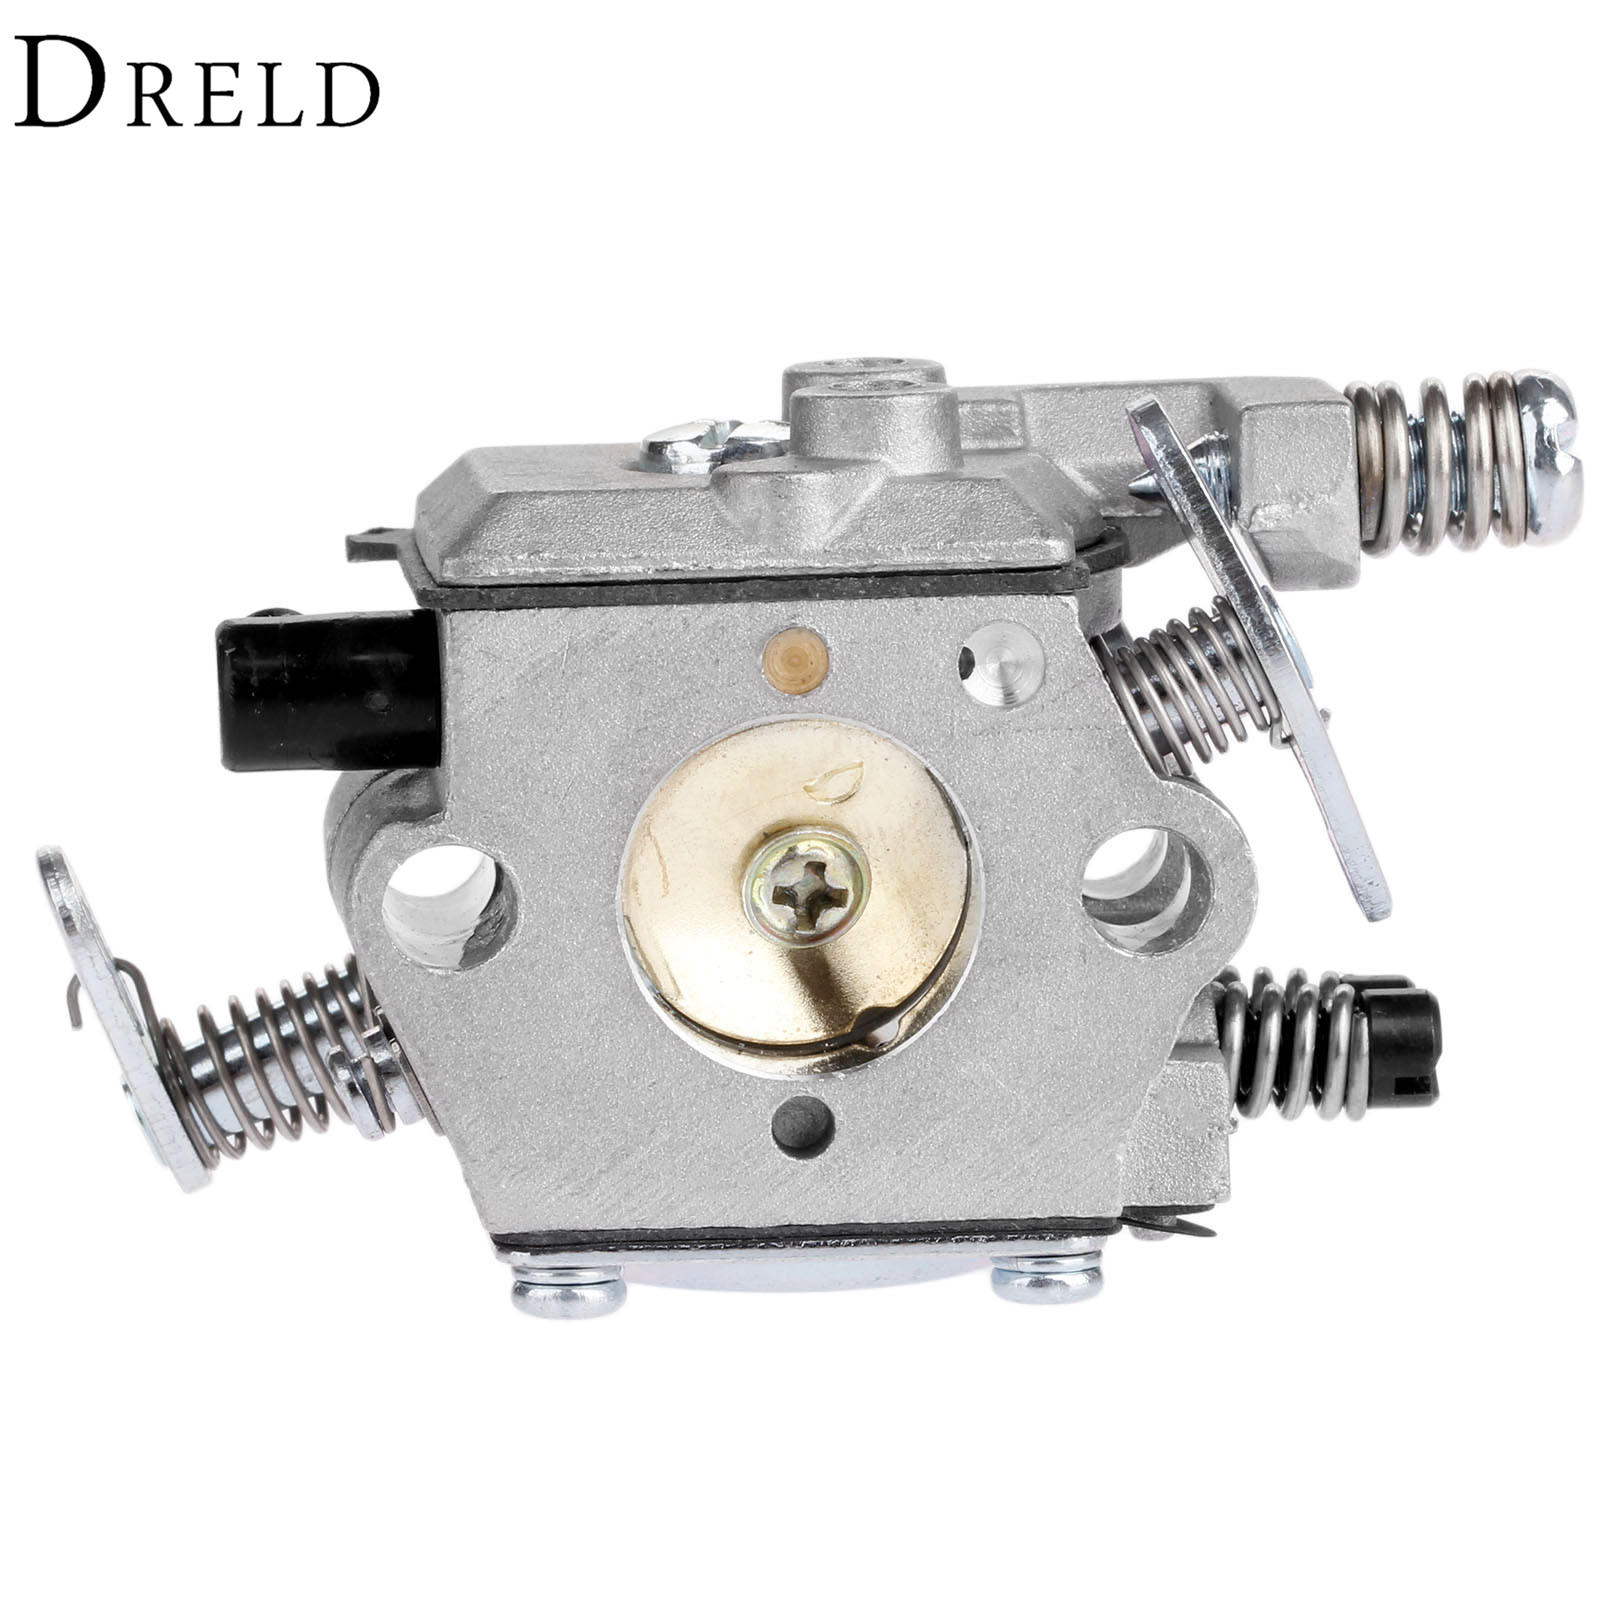 DRELD Chainsaw Carburetor Carb for STIHL 021 023 025 MS210 MS230 MS250 Chain Saw Spare Parts Garden Tools Parts Wholesale 42 5mm cylinder piston for stihl 023 025 ms230 ms250 crankshaft carburetor carb with gasket chainsaw engine